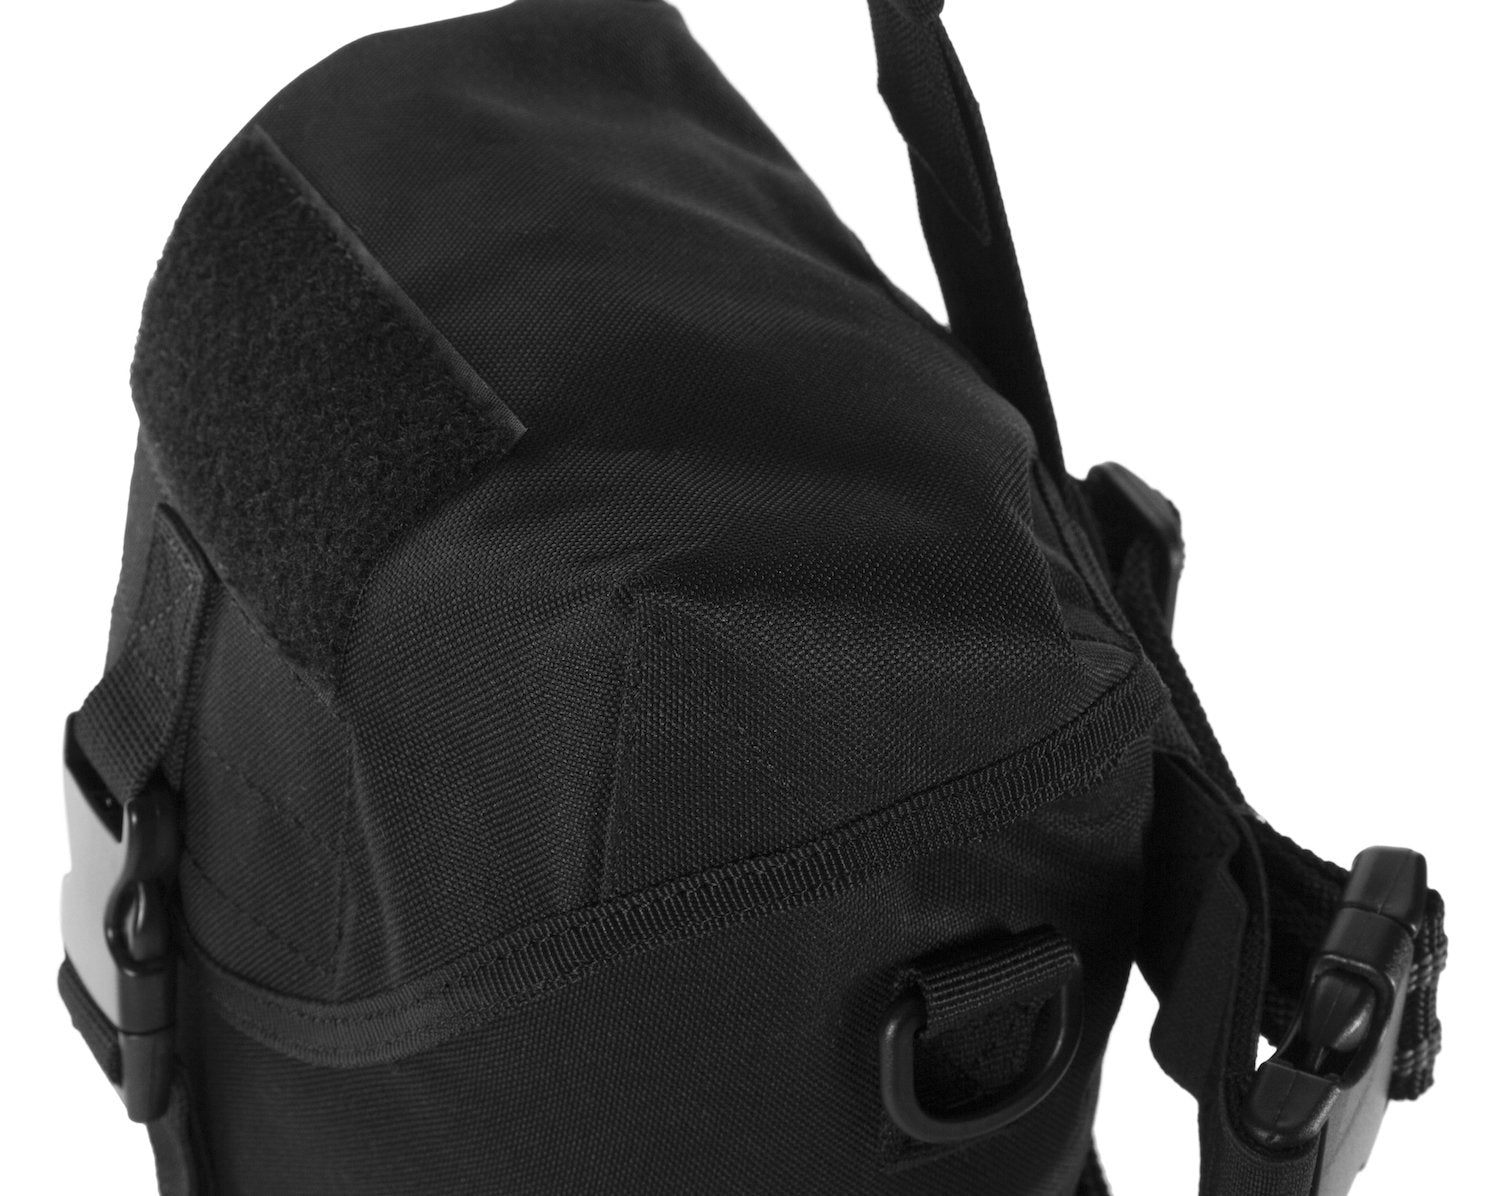 MIRA Safety gas mask pouch closeup side view